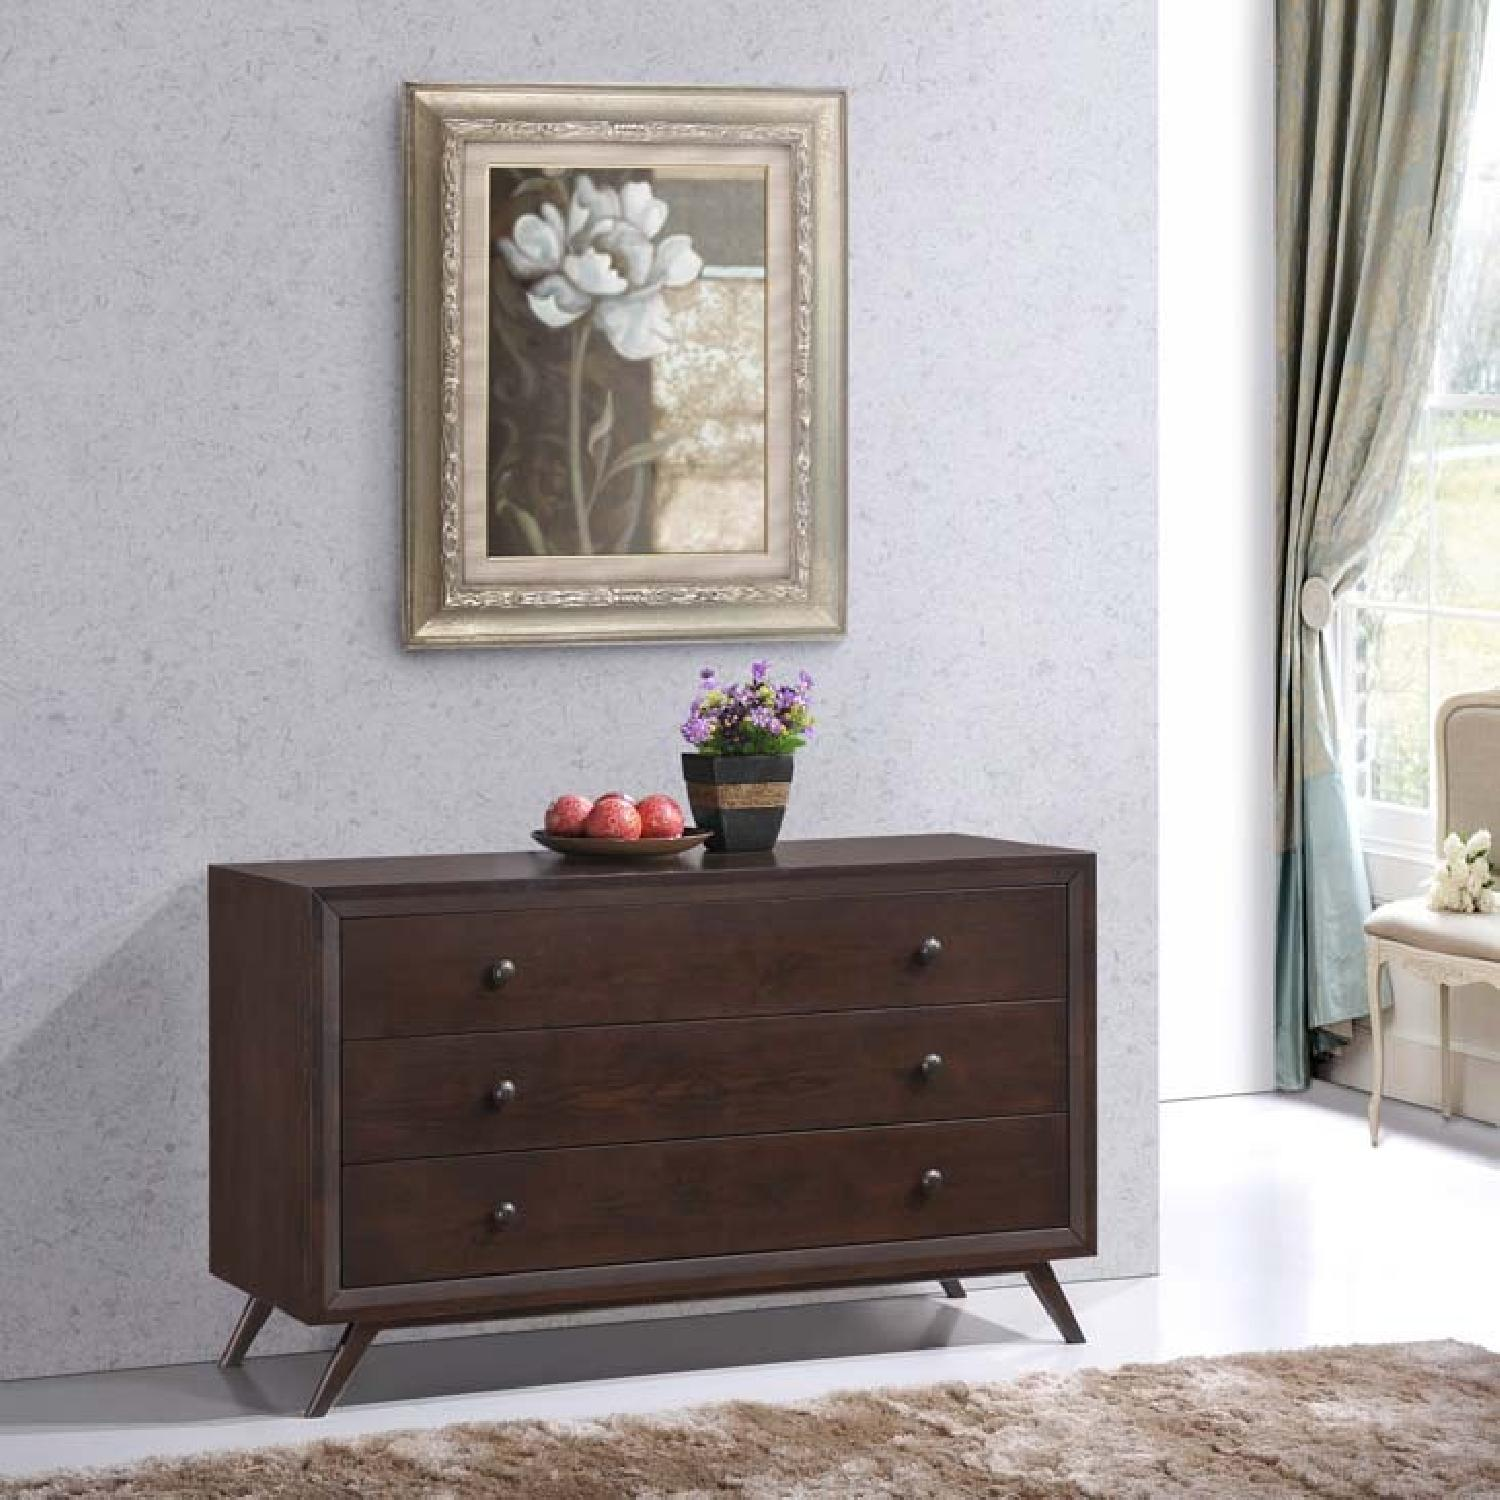 Manhattan Home Design Vintage Wood Dresser in Black-6